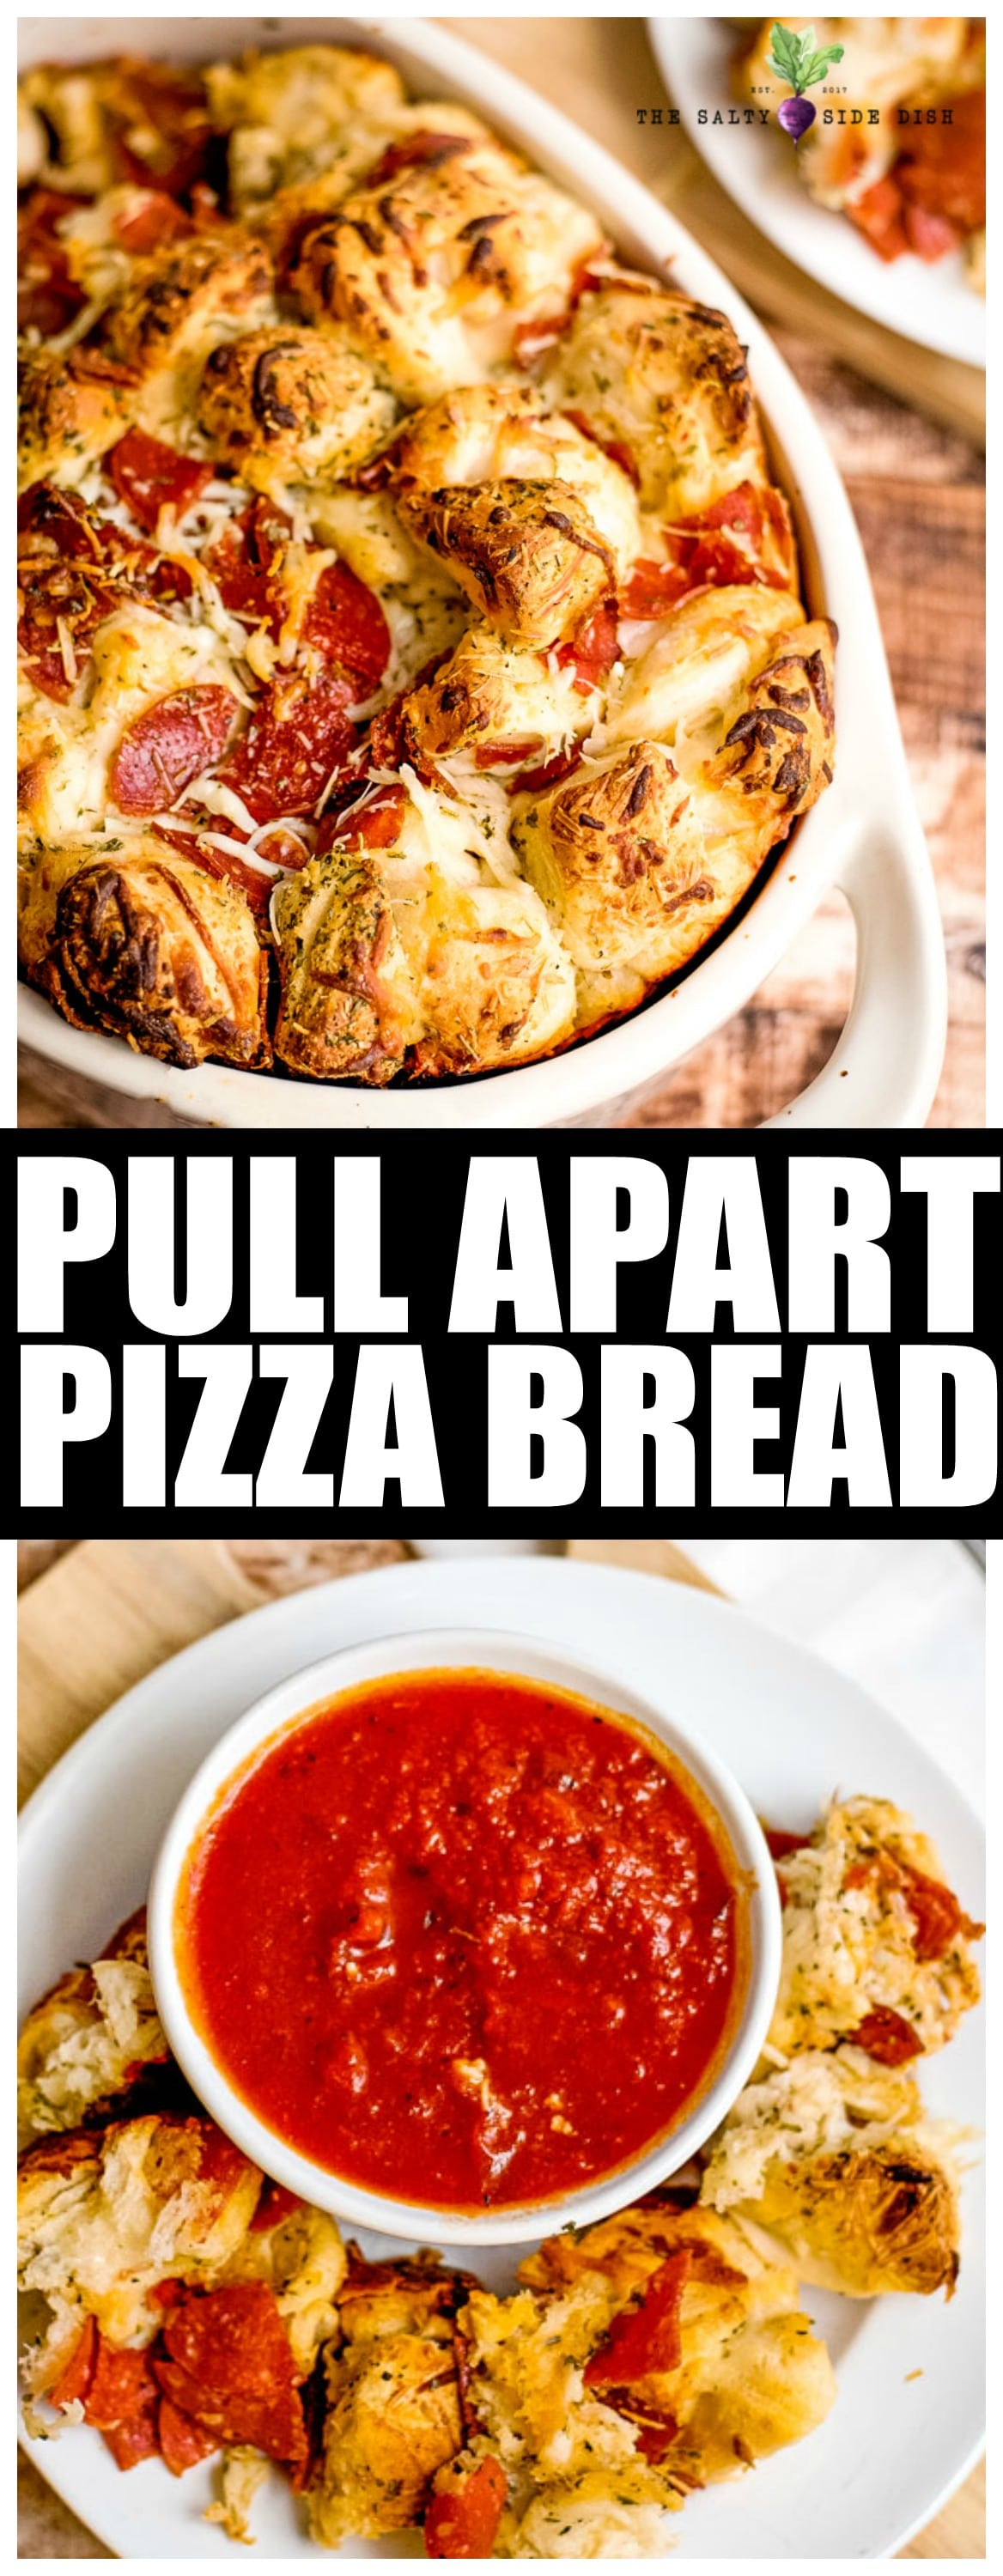 Pull Apart Pizza Bread with Pillsbury biscuits is an easy go to appetizer packed full of pepperoni, flaky biscuits, and melty cheese to make a hearty meal. #appetizer #pizza #bread #sidedish #saltysidedish #party